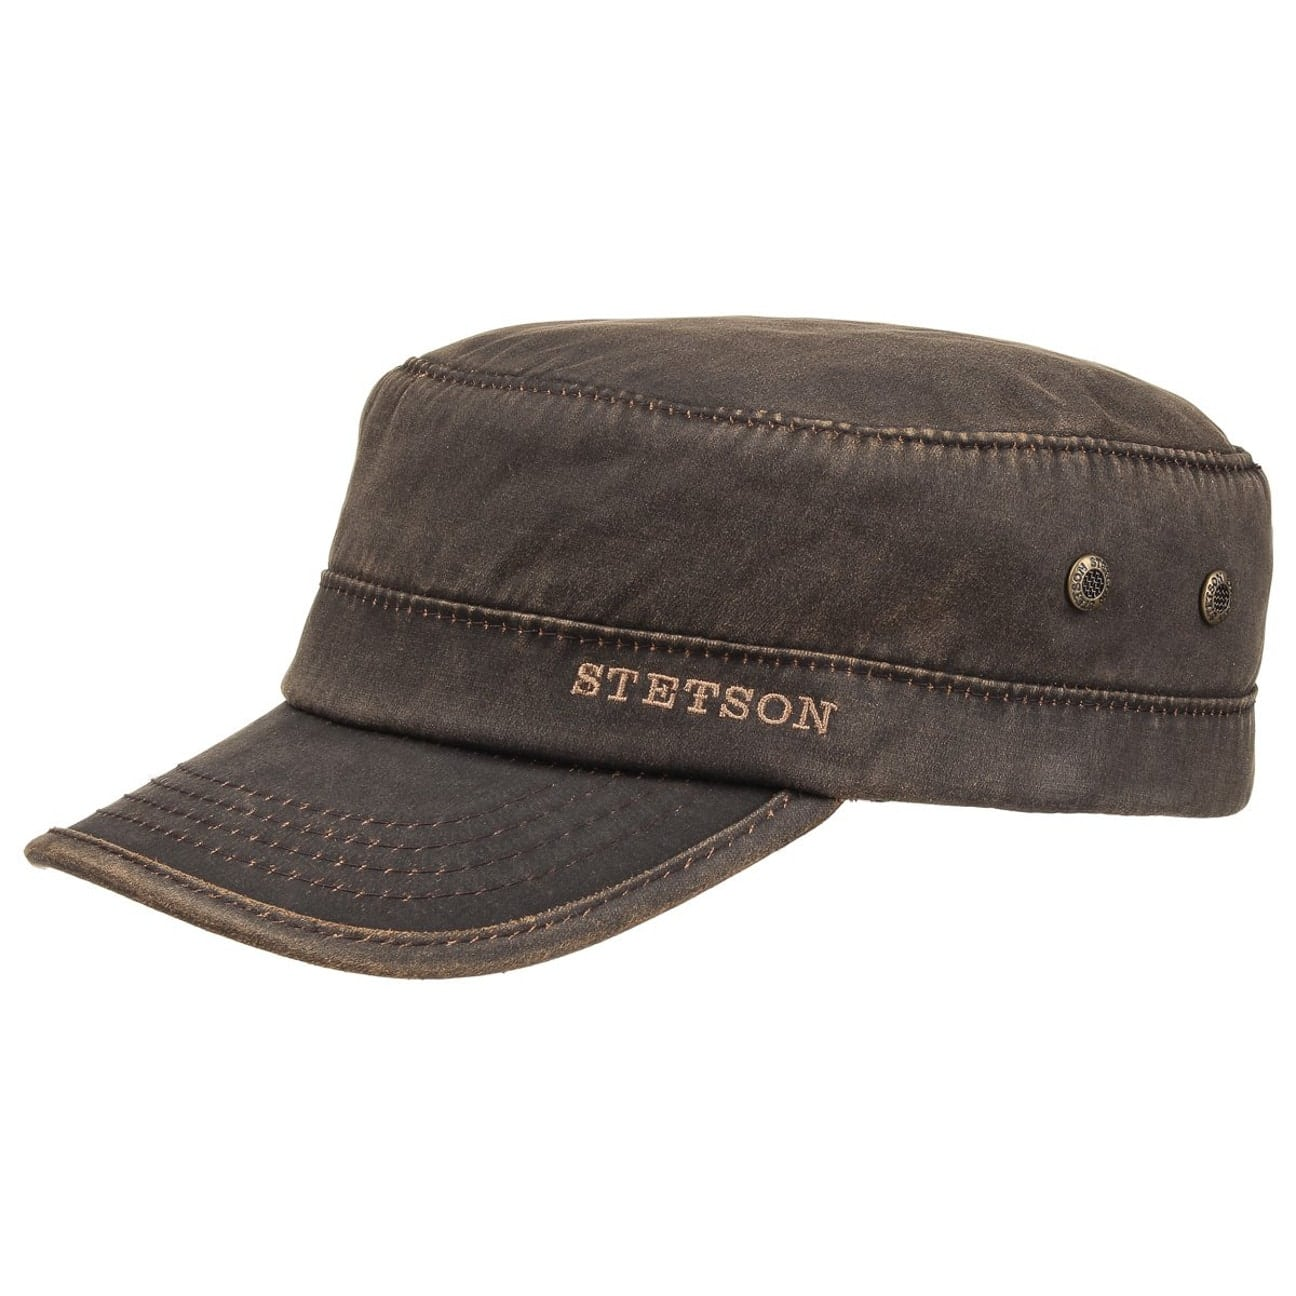 Datto Winter Army Cap by Stetson, EUR 49,00 --> Hats, caps ...